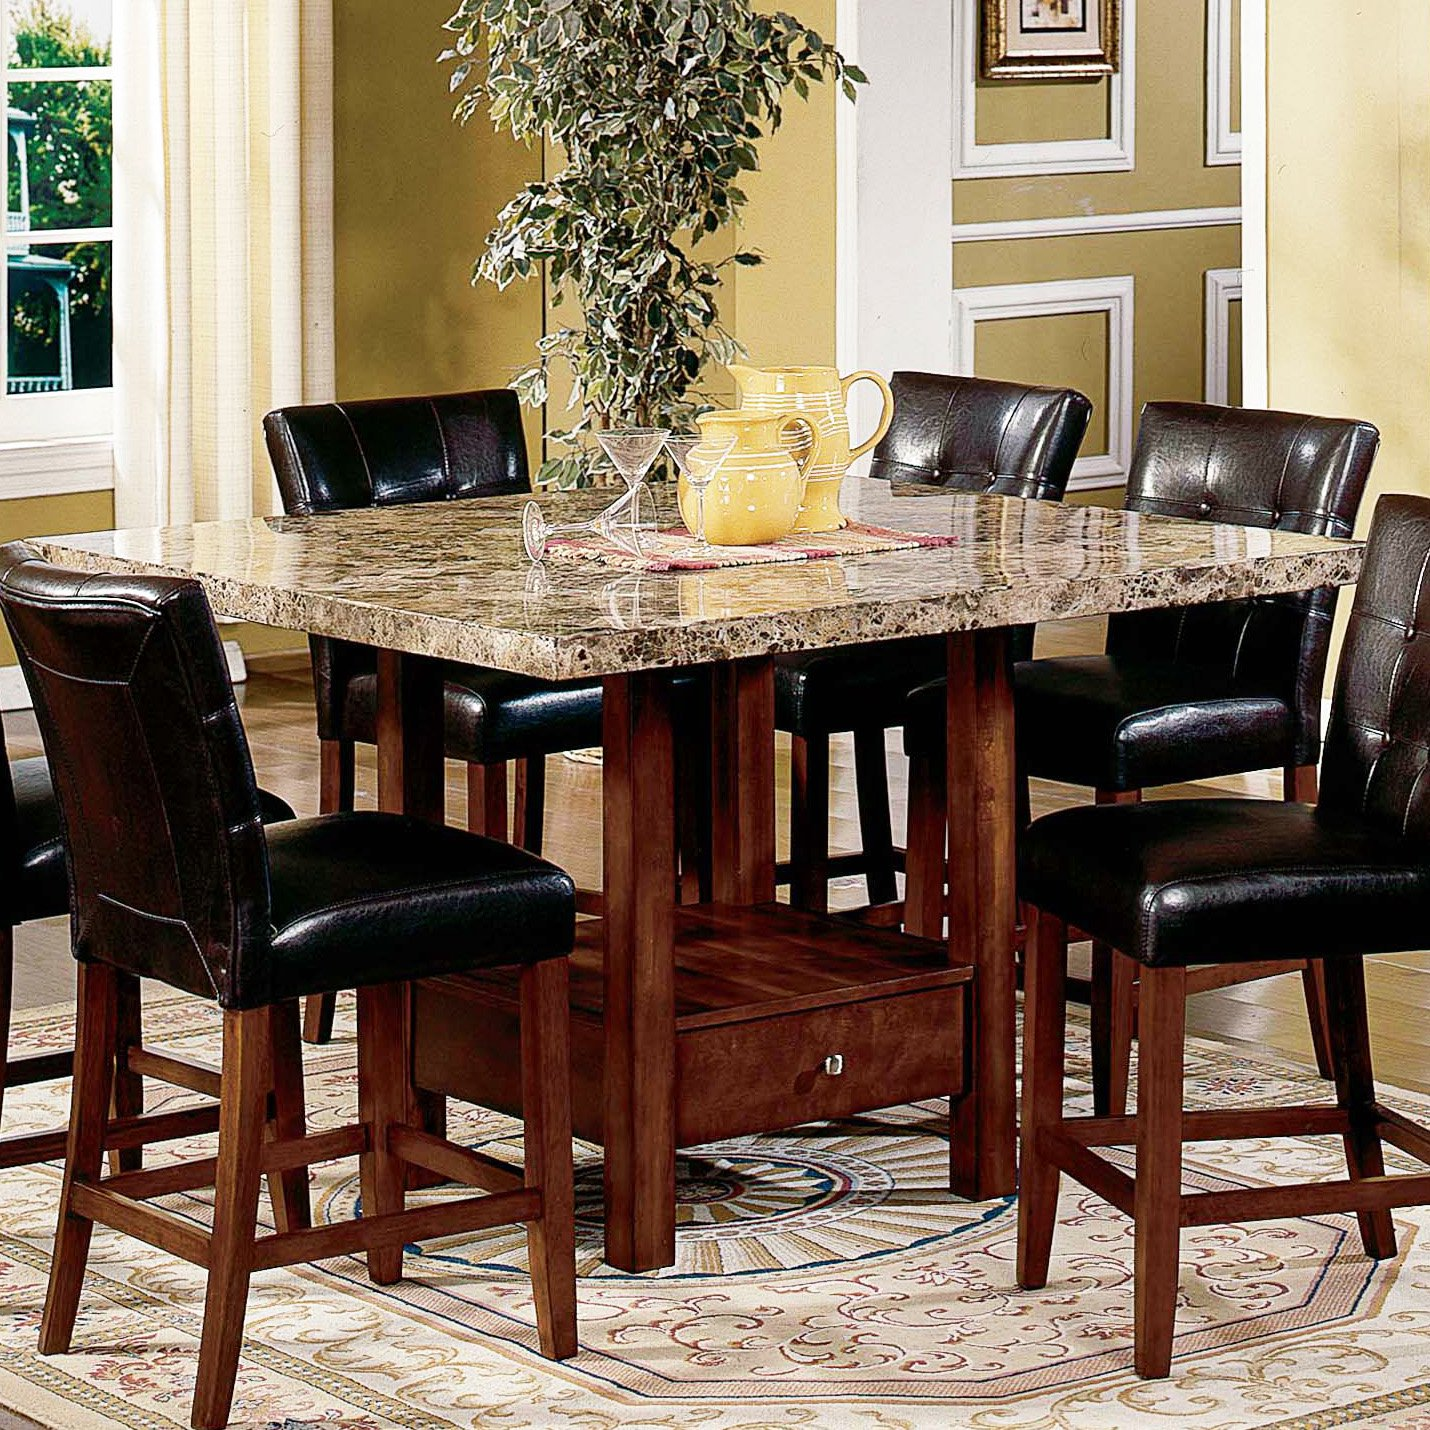 high top kitchen table sets homesfeed. Black Bedroom Furniture Sets. Home Design Ideas